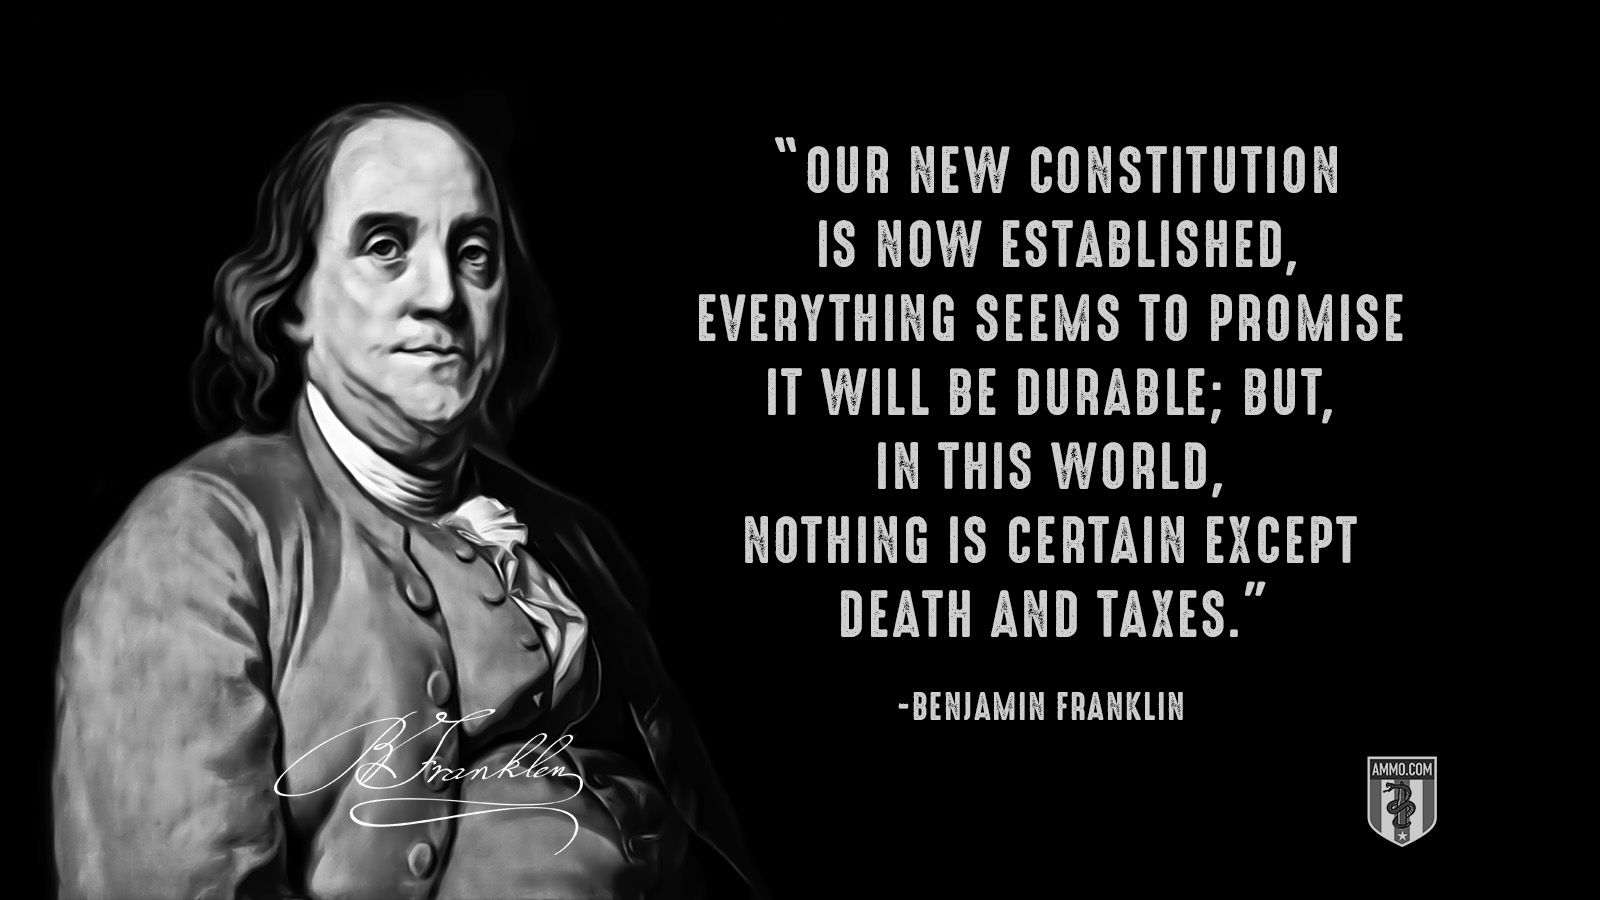 """Our new Constitution is now established, everything seems to promise it will be durable; but, in this world, nothing is certain except death and taxes."" - Benjamin Franklin"